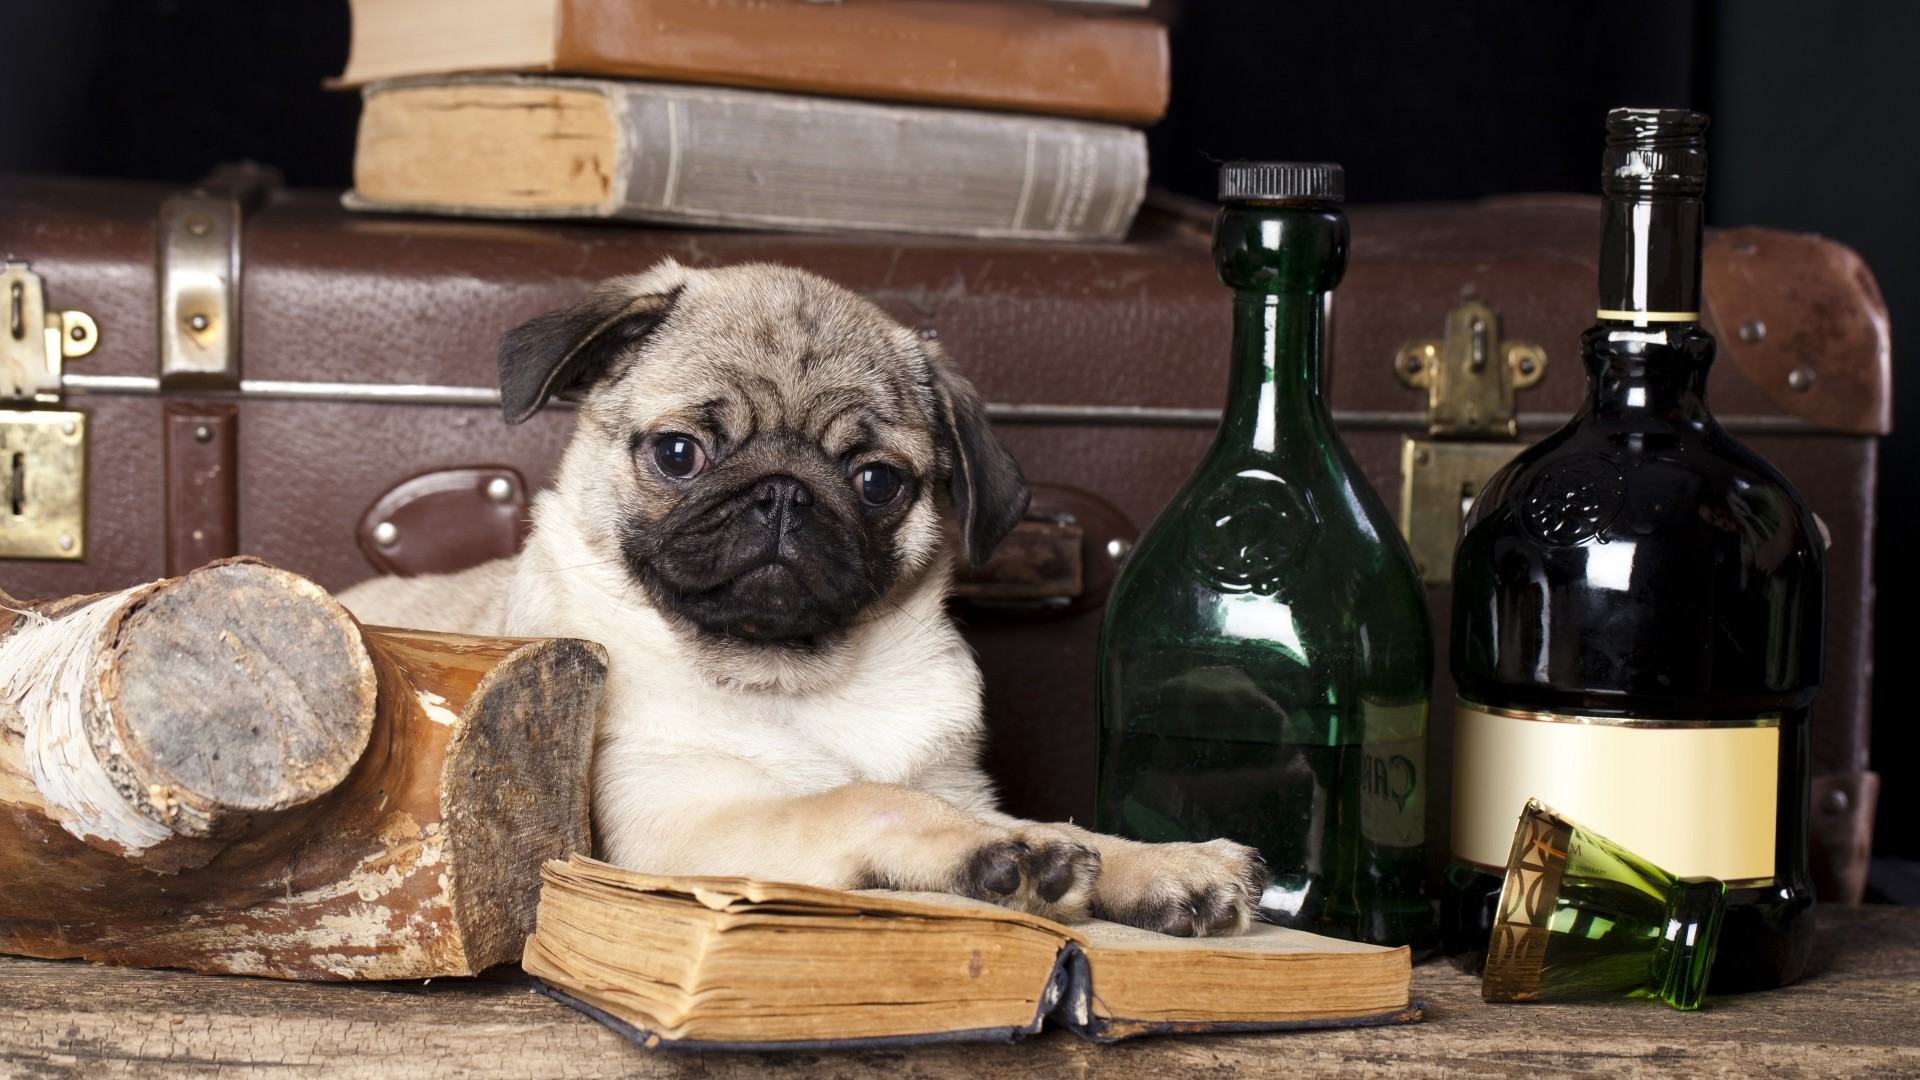 1920x1080 Download now full hd wallpaper pug gentleman book bottle dog ...